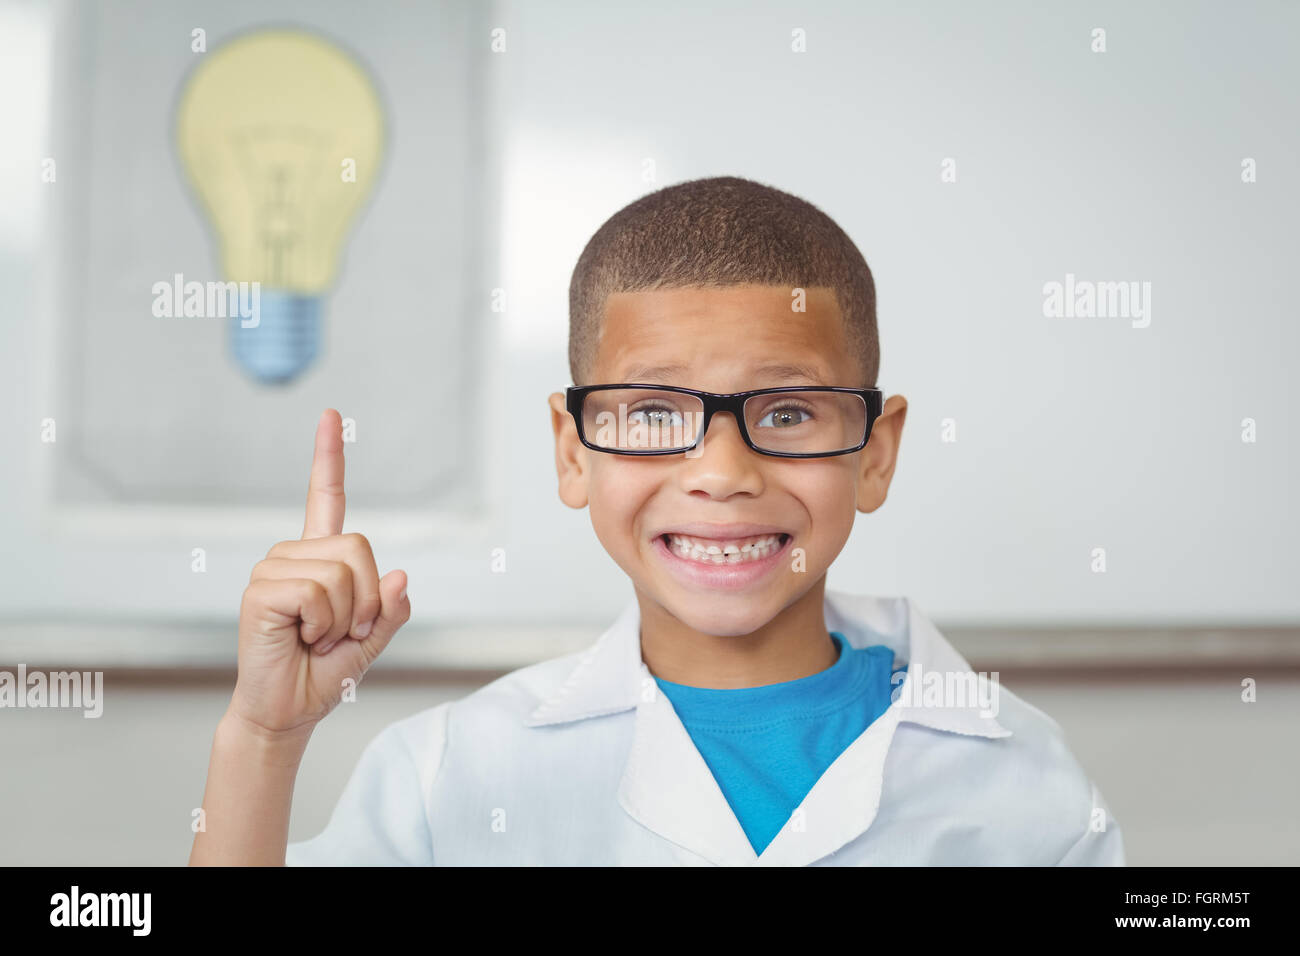 Smiling pupil with lab coat having an idea - Stock Image